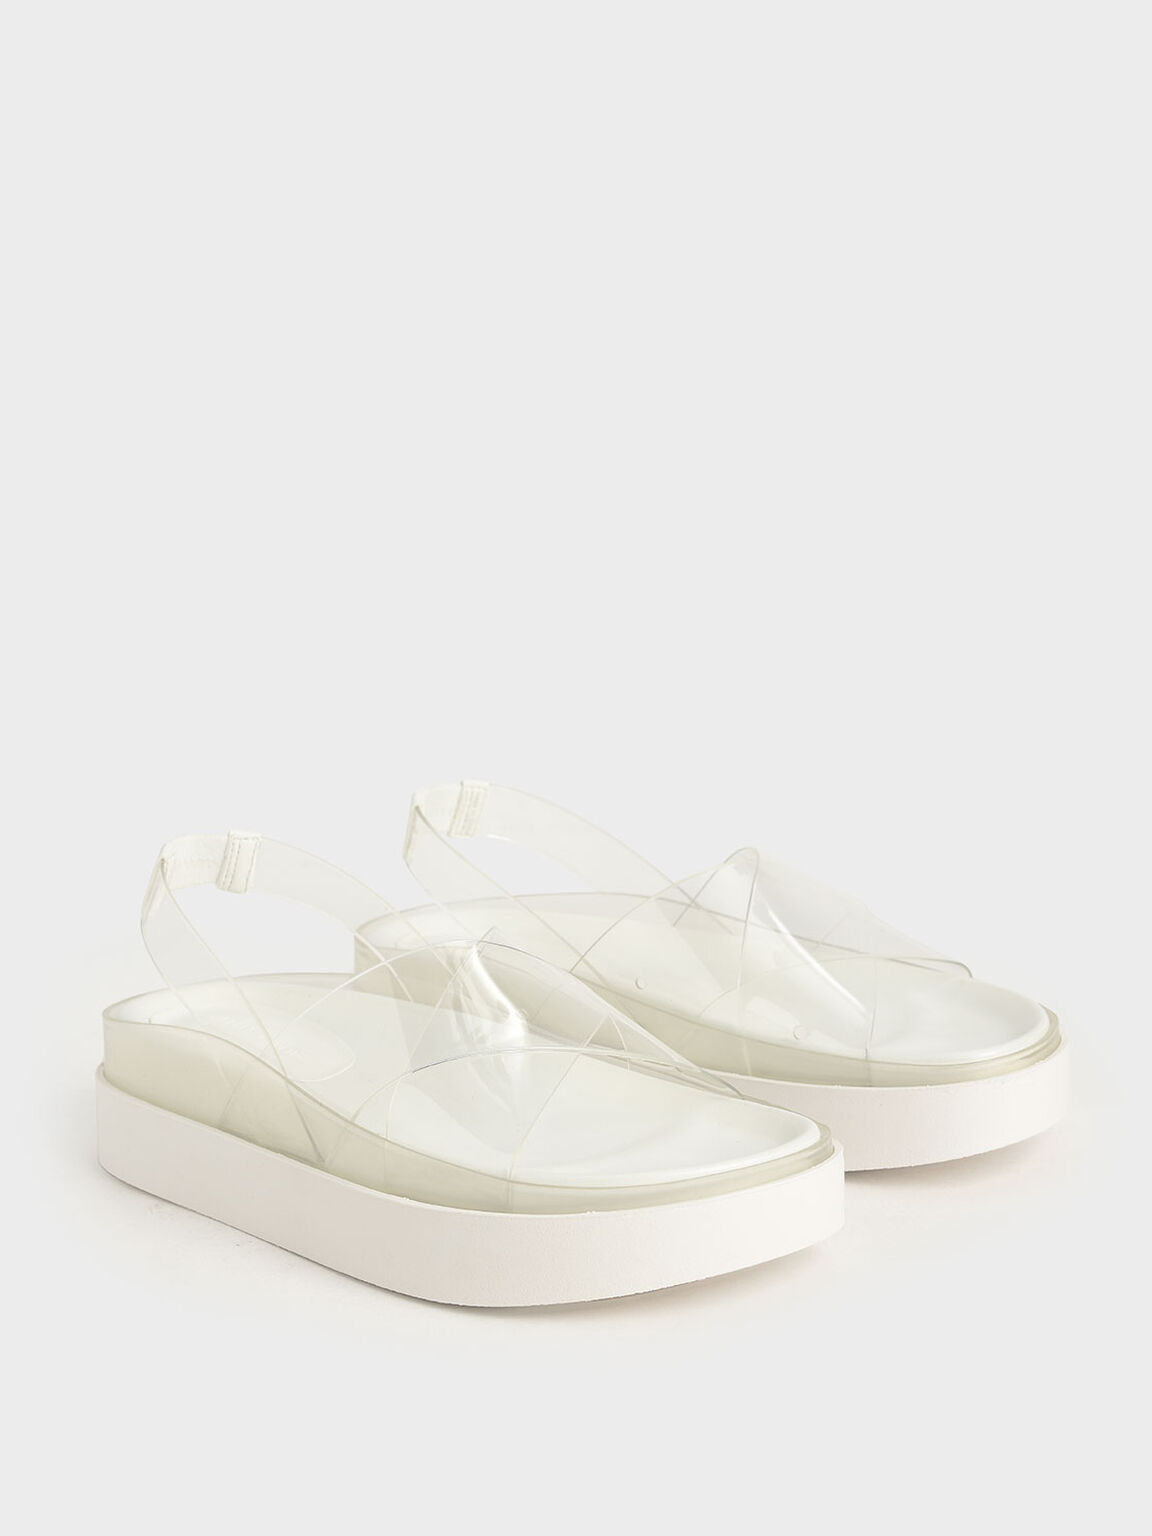 See-Through Effect Flatform Sandals, White, hi-res